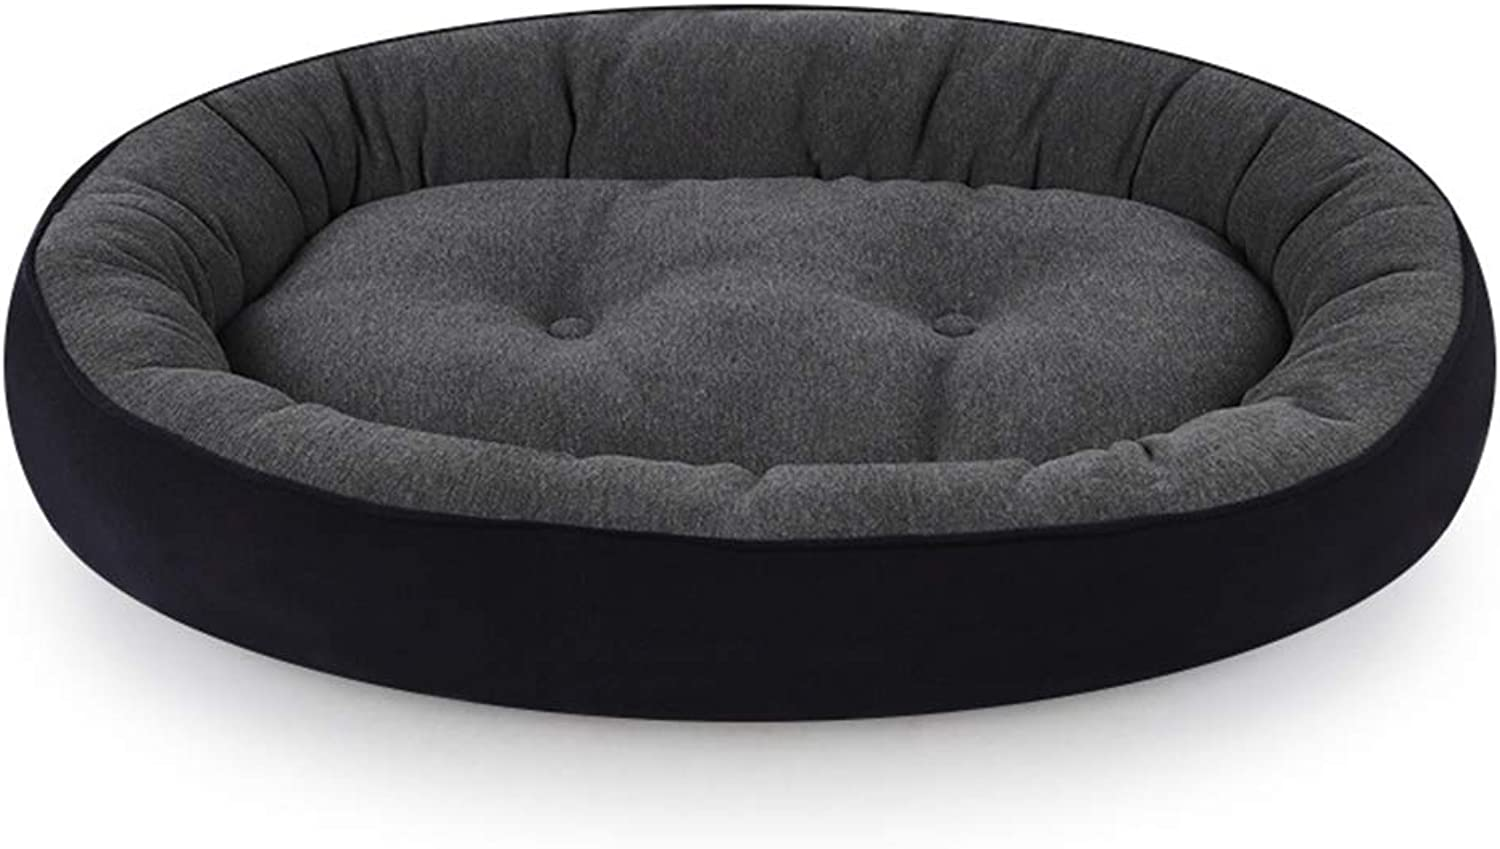 QZX Plush Pet Bed Dog Bed PP cotton padding Three modes Suitable for medium and large dogs Multipurpose oval pet bed Soft Comfy Washable Dog Bed